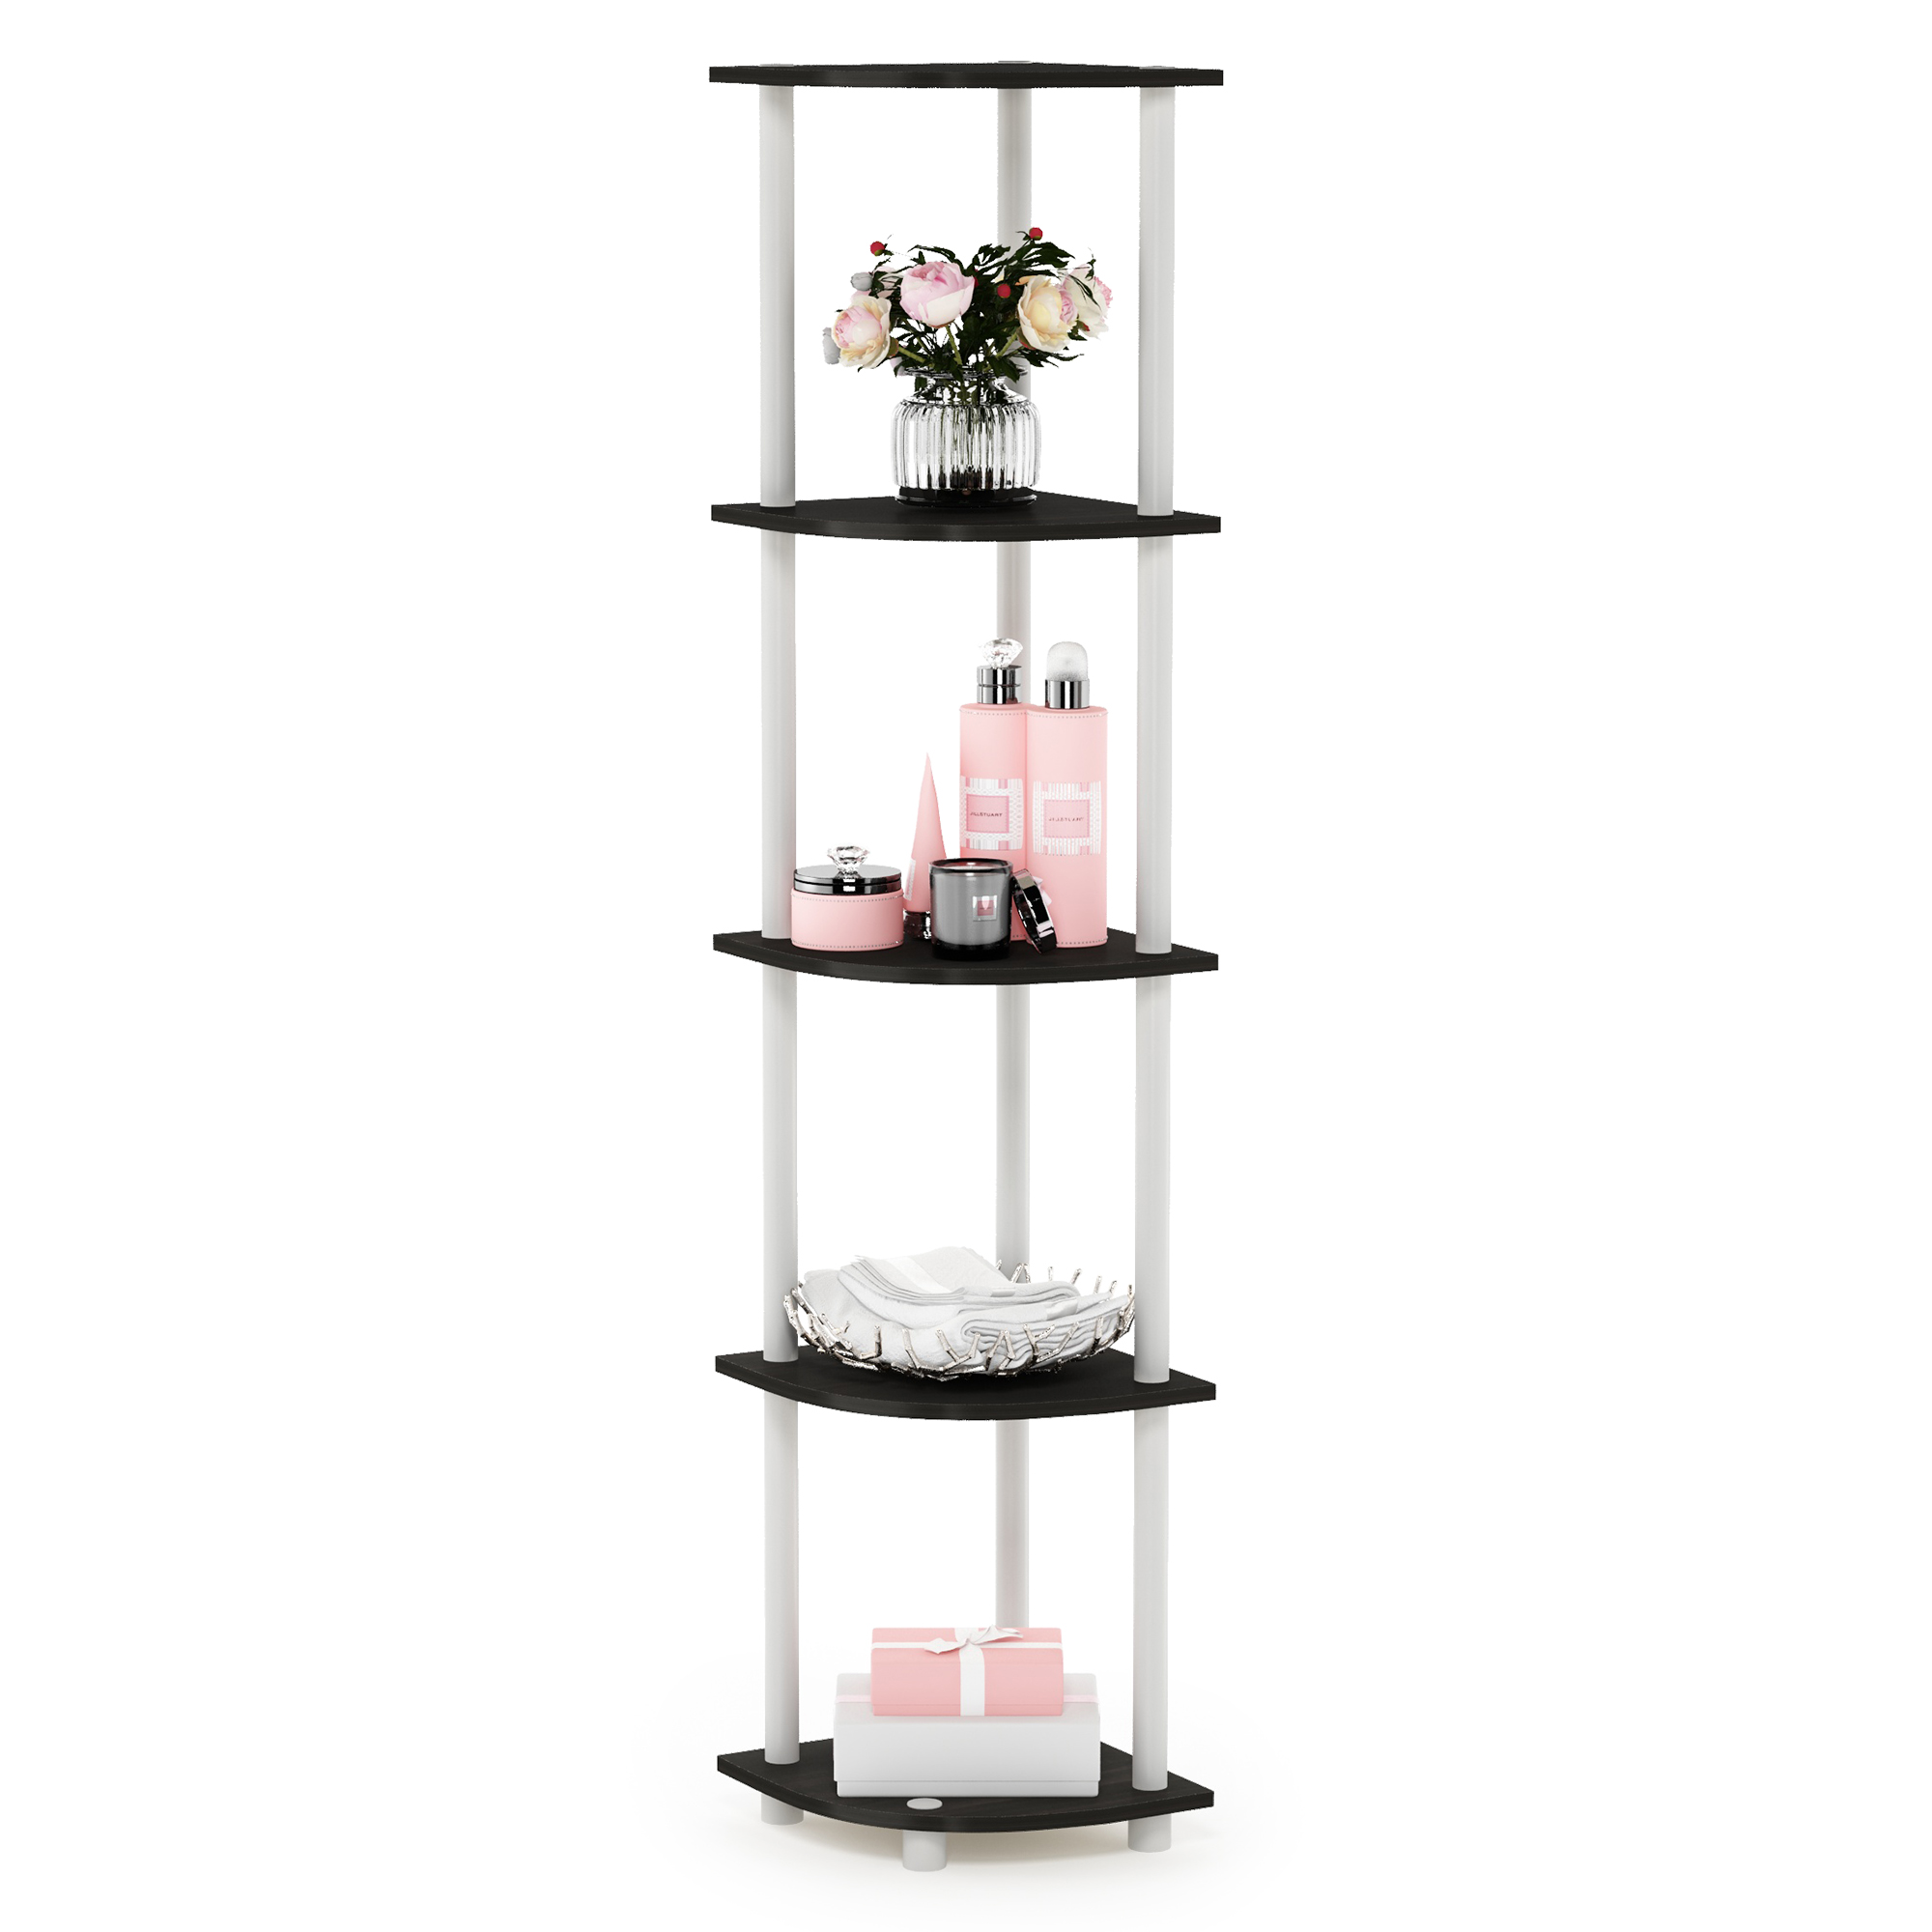 Furinno Turn-N-Tube 5 Tier Corner Display Rack Shelving Unit